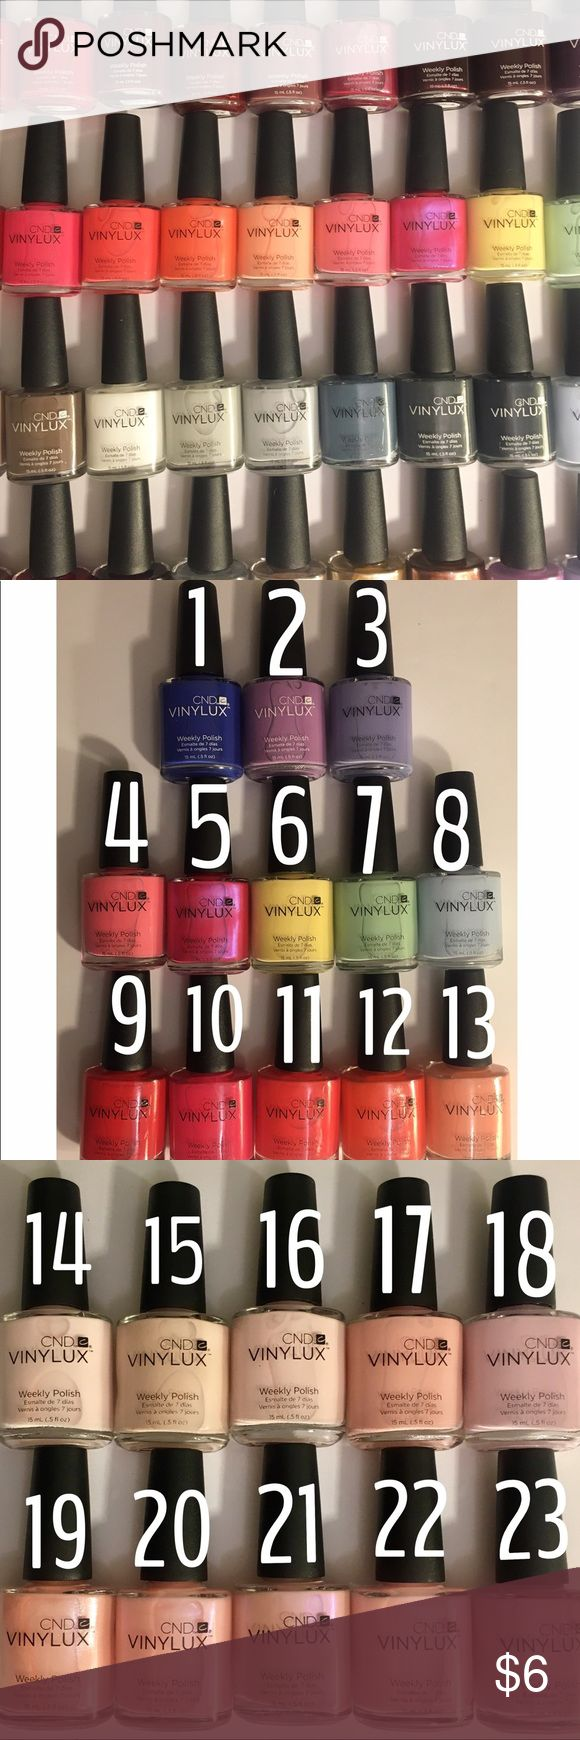 48 COLORS CND Vinylux Weekly Nail Polish Brand New, Unused, Full-Sized (15mL) Bottles of CND Vinylux Weekly Polishes in 48 Various Colors for you to choose from! Vinylux does NOT require a base coat due to its own built-in adhesion promotors. No special light needed either - just a regular light bulb or the sun! Vinylux promises to leave your nails like-new for 7 Beautiful, Chip-Free days of wear. For color names see the last photo.     *1ST 5 TO PURCHASE GET FREE CND TOP COAT!*      Price…